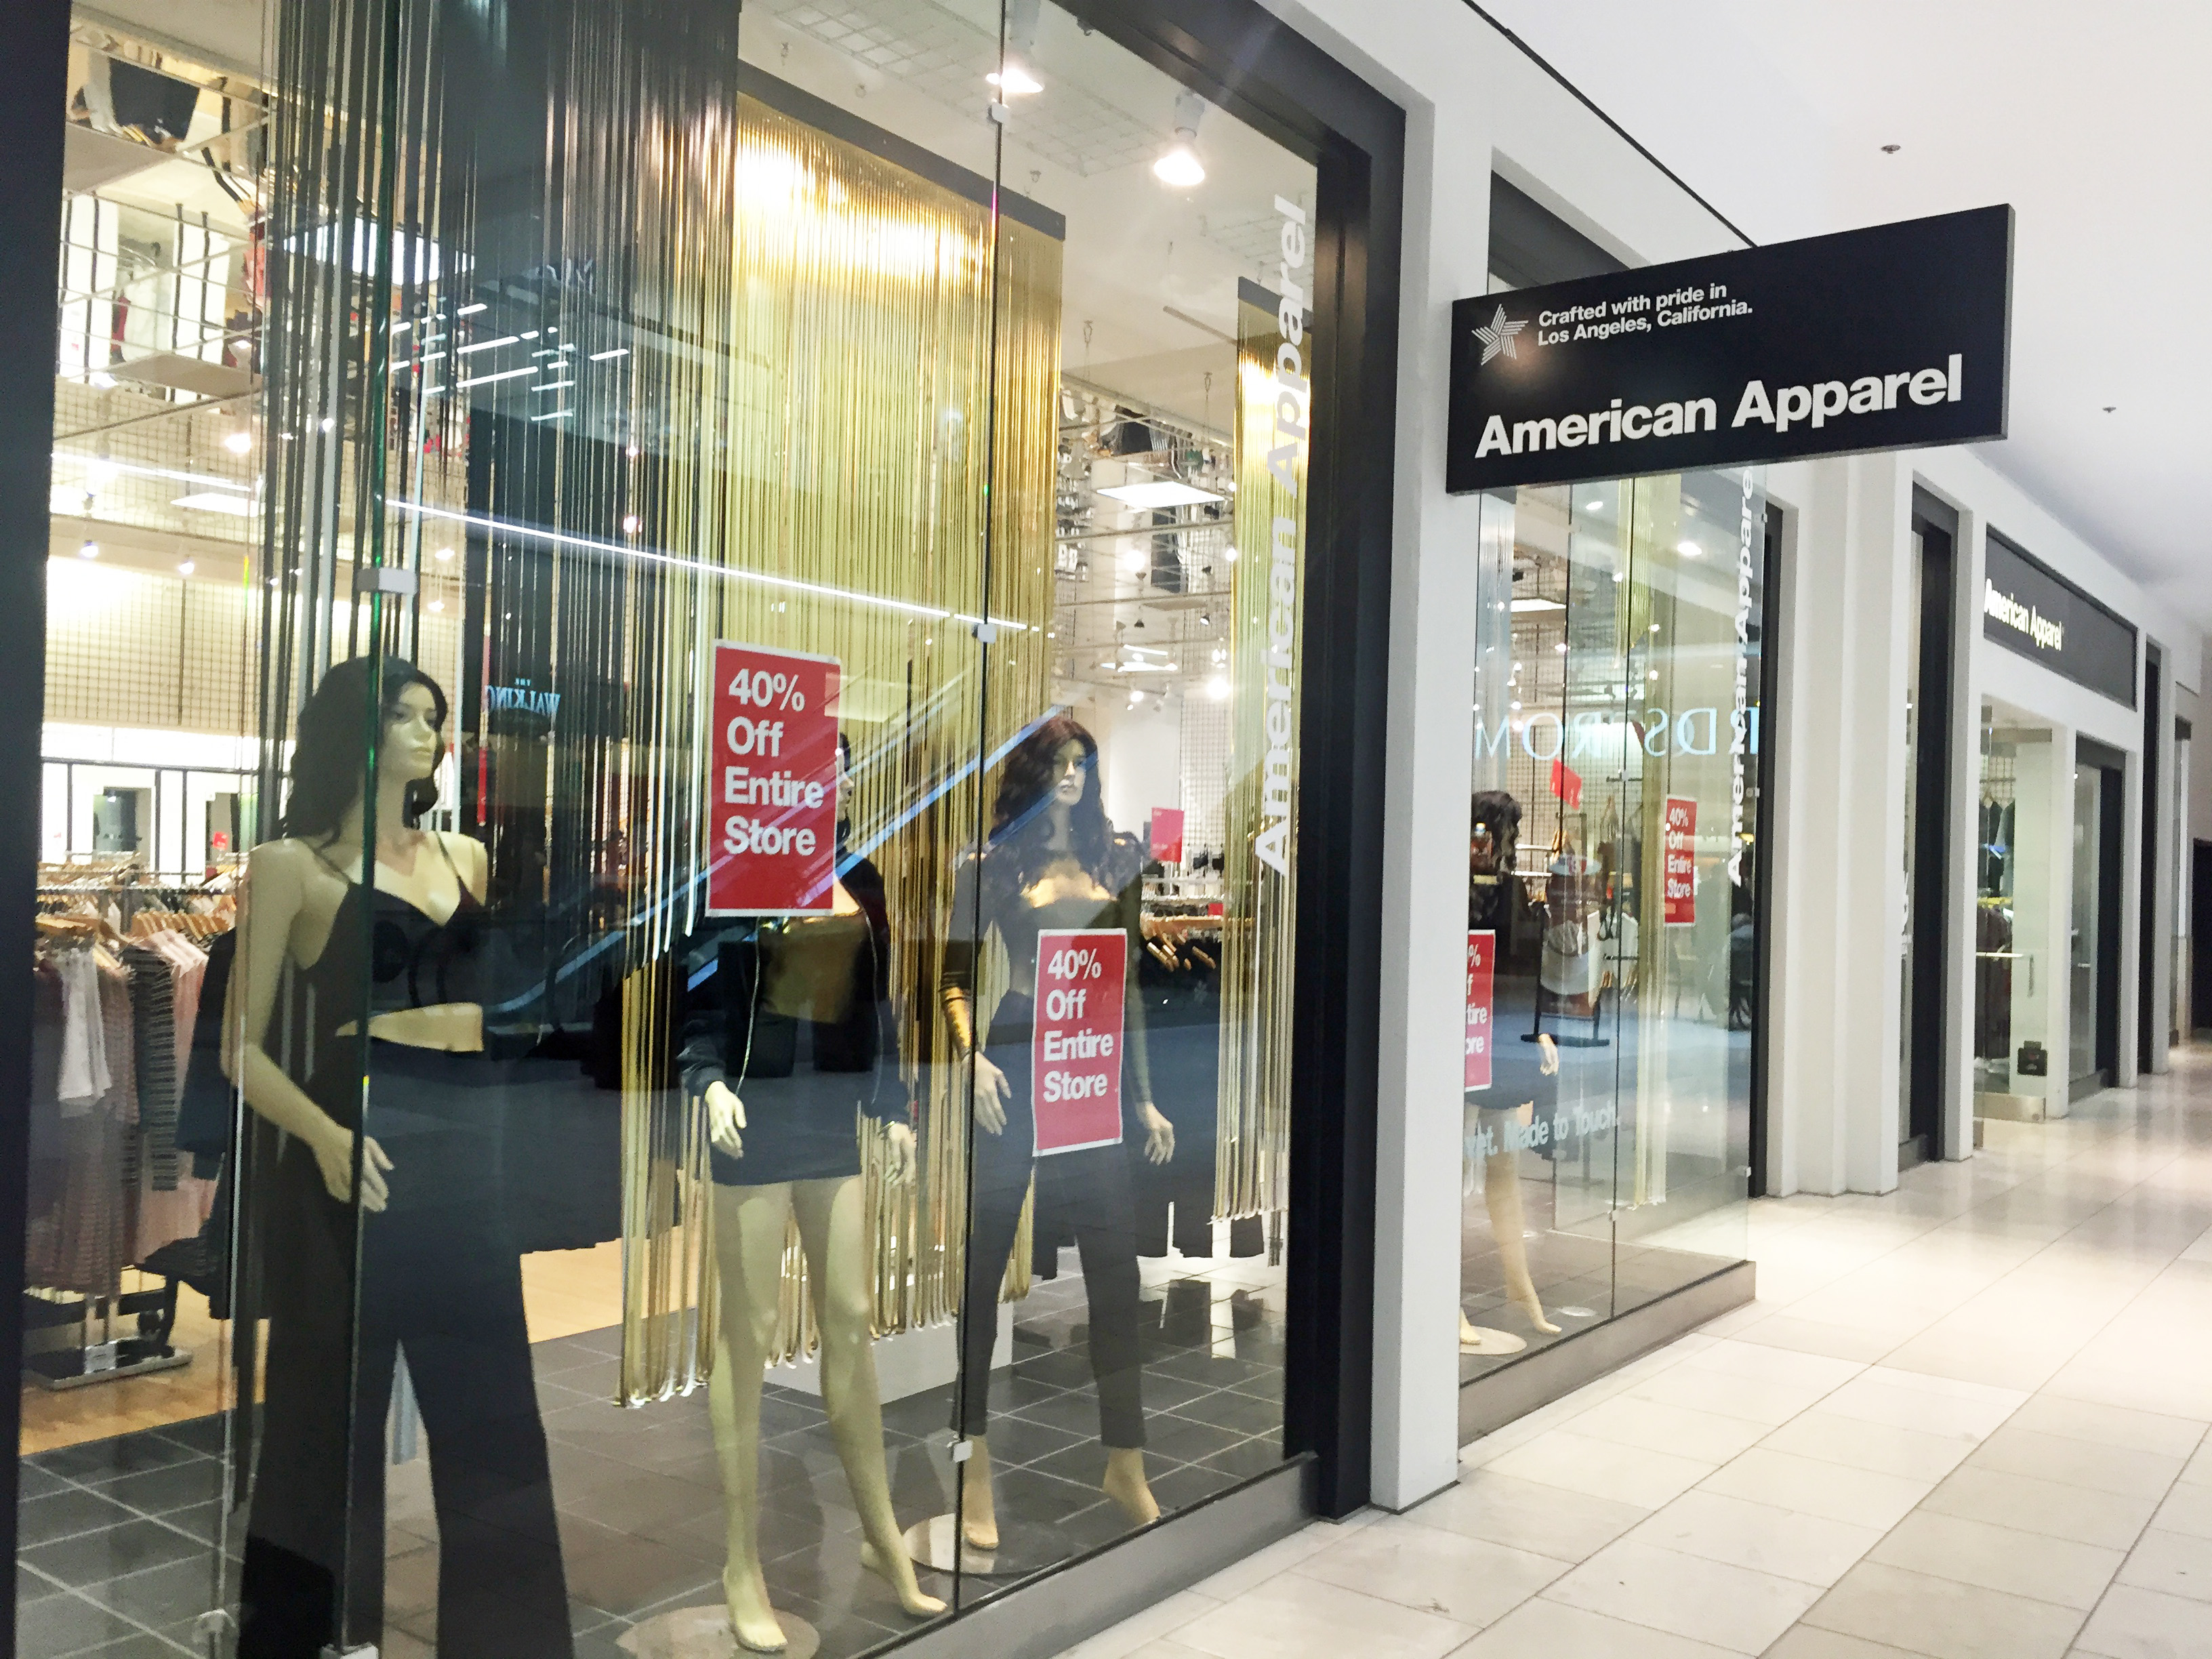 A bankruptcy court auction will determine the future of American Apparel's store base.